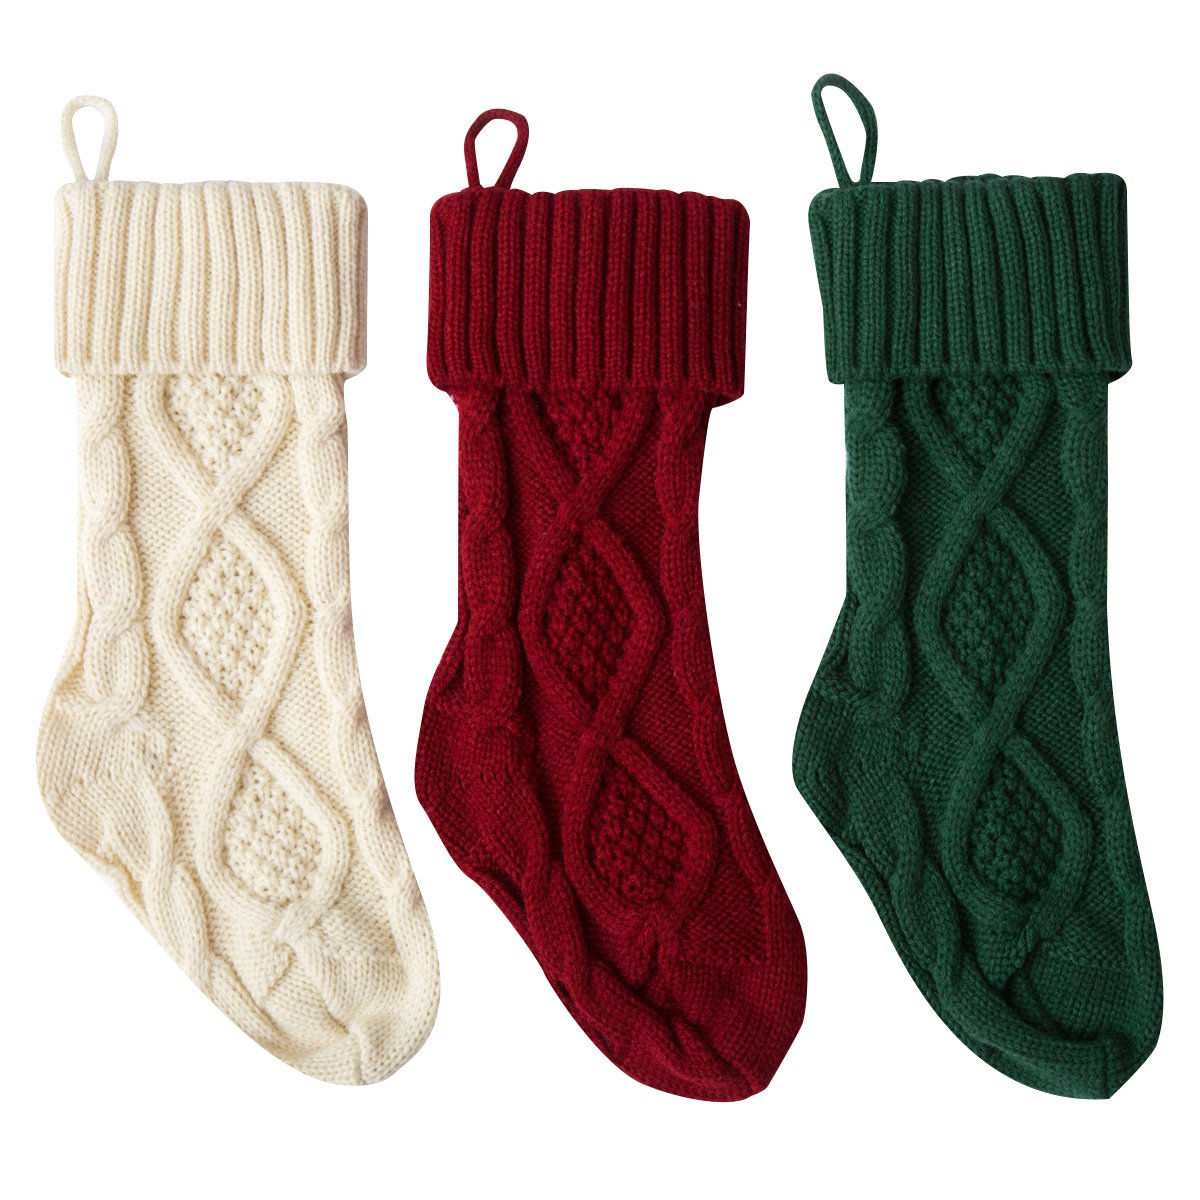 Solucky 3PC Set- 15'' Classic Christmas Knit Stockings, Christmas Decorations, White, Red and Green